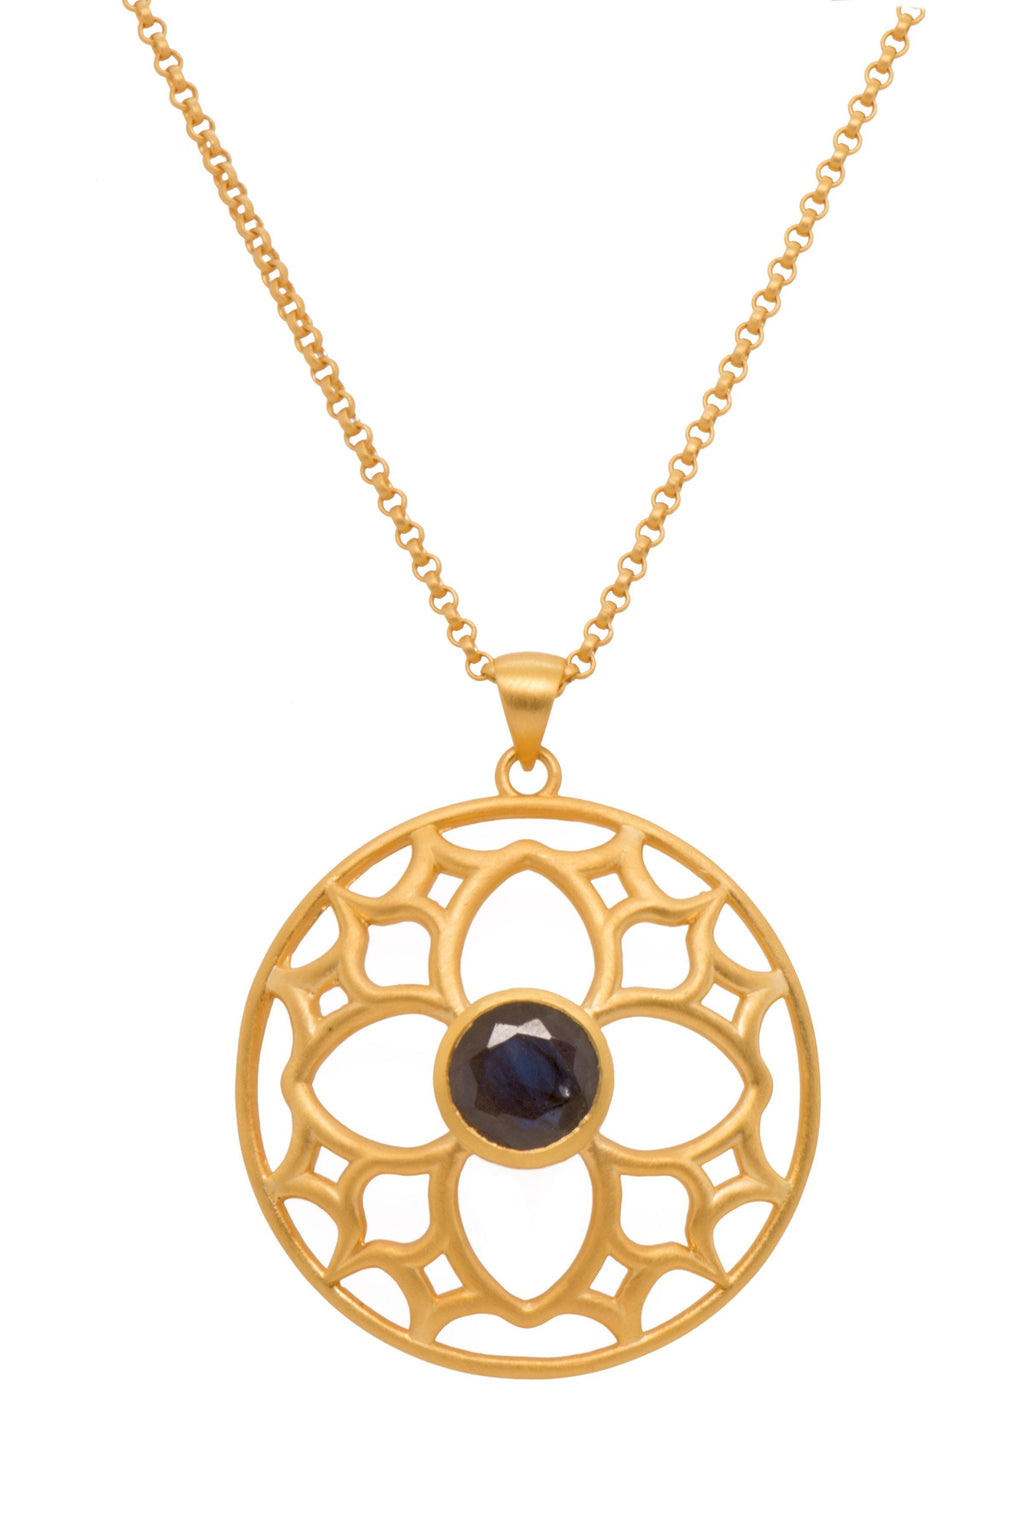 JOYFULP1SQ PENDANT- JOYFUL CIRCLE 40MM SMOKY QUARTZ 24K GOLD VERMEIL